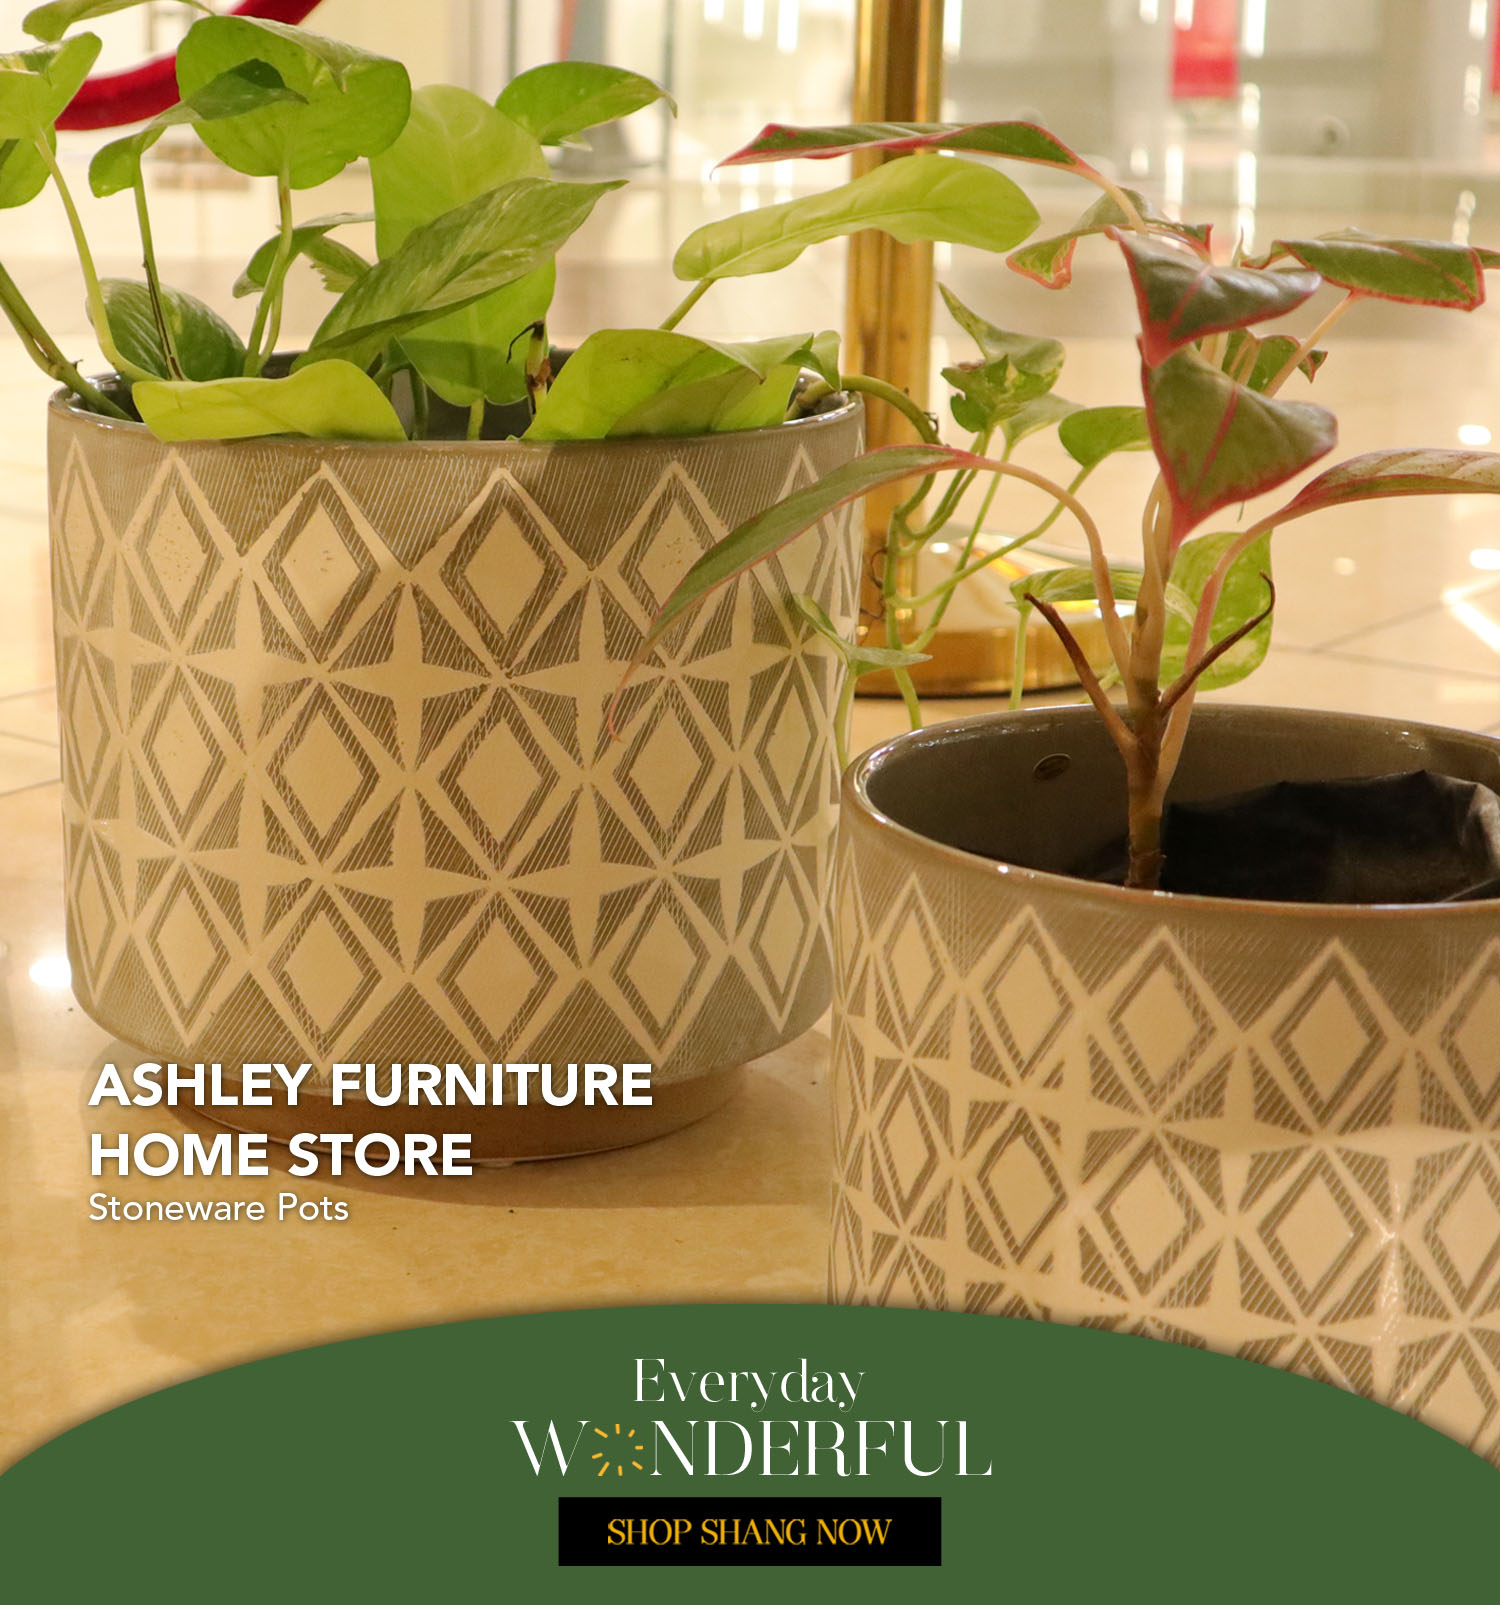 Stoneware Pots from Ashley Furniture Home Store